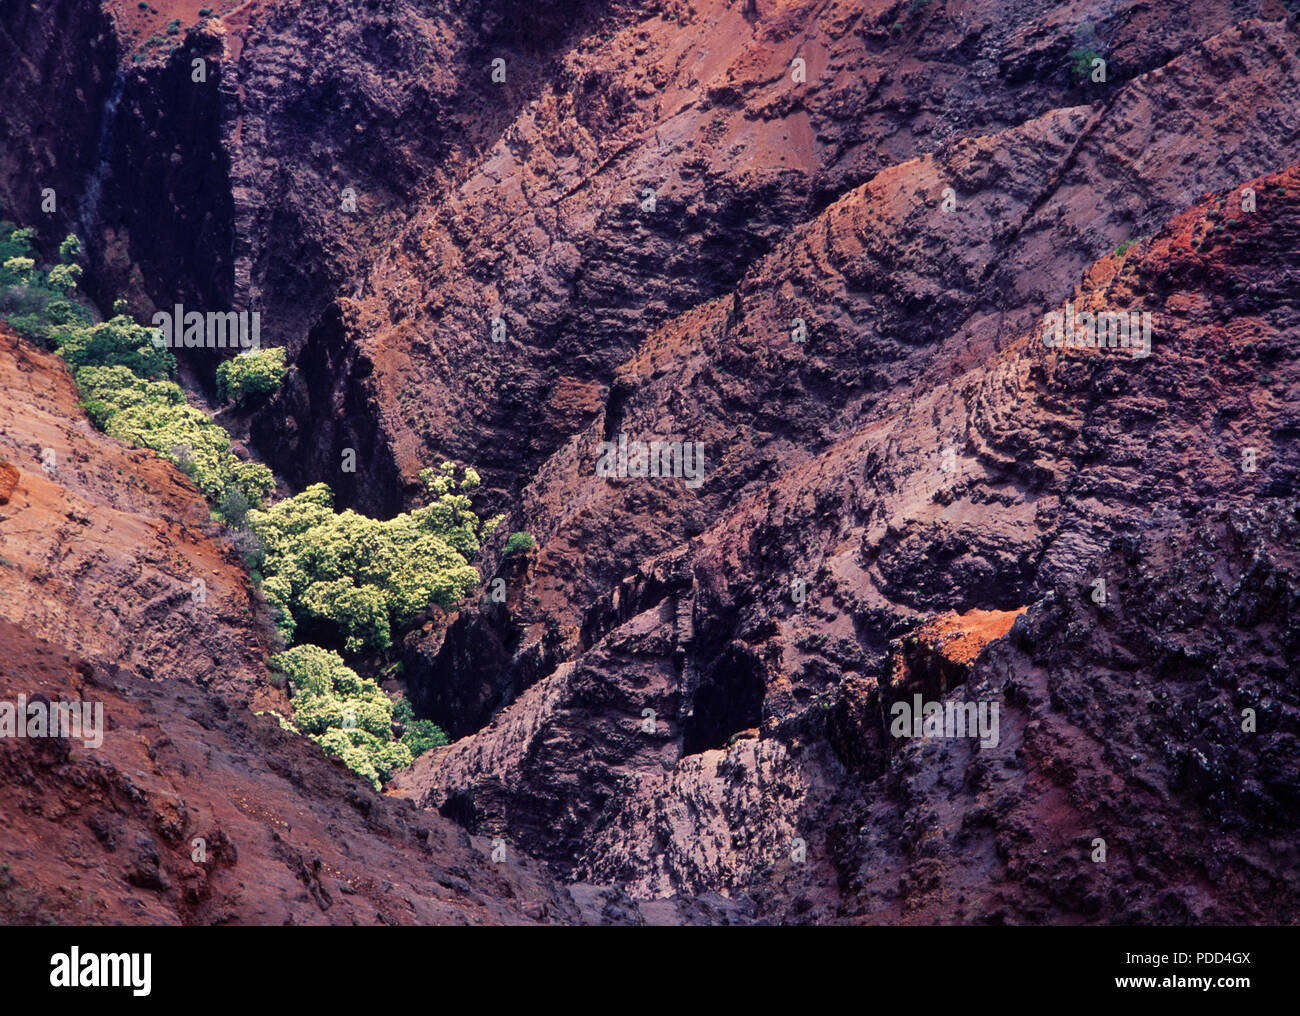 Waimea Canyon showing layers of weathered volcanic basalt from millions of years ago, Kauai, Hawaii. - Stock Image